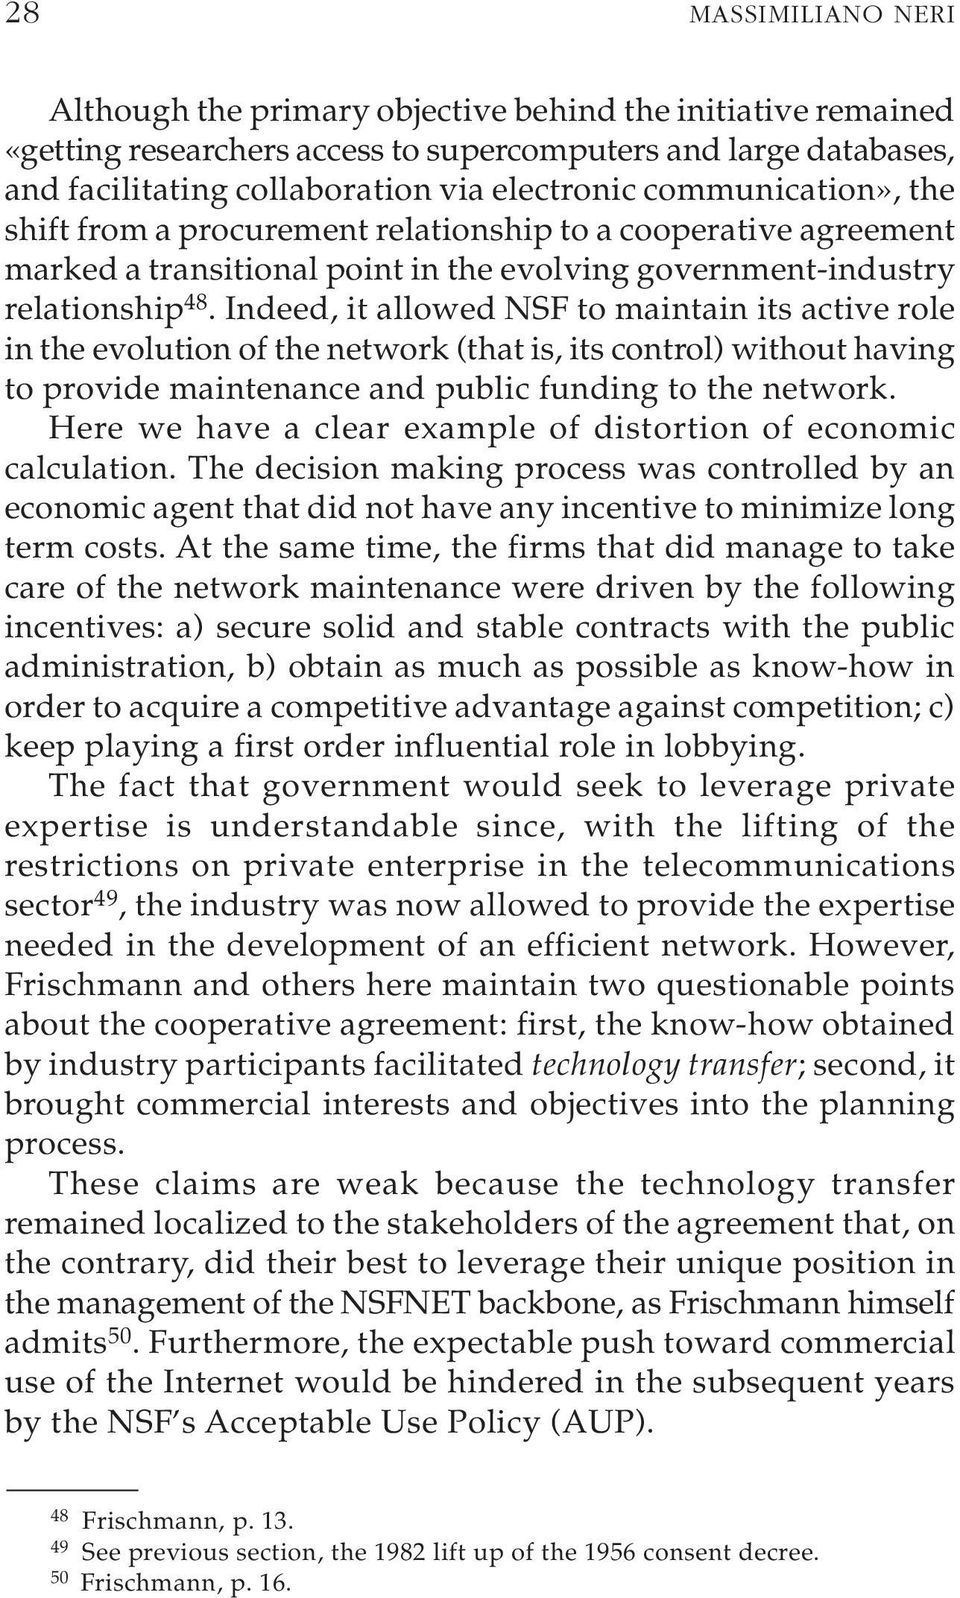 Indeed, it allowed NSF to maintain its active role in the evolution of the network (that is, its control) without having to provide maintenance and public funding to the network.